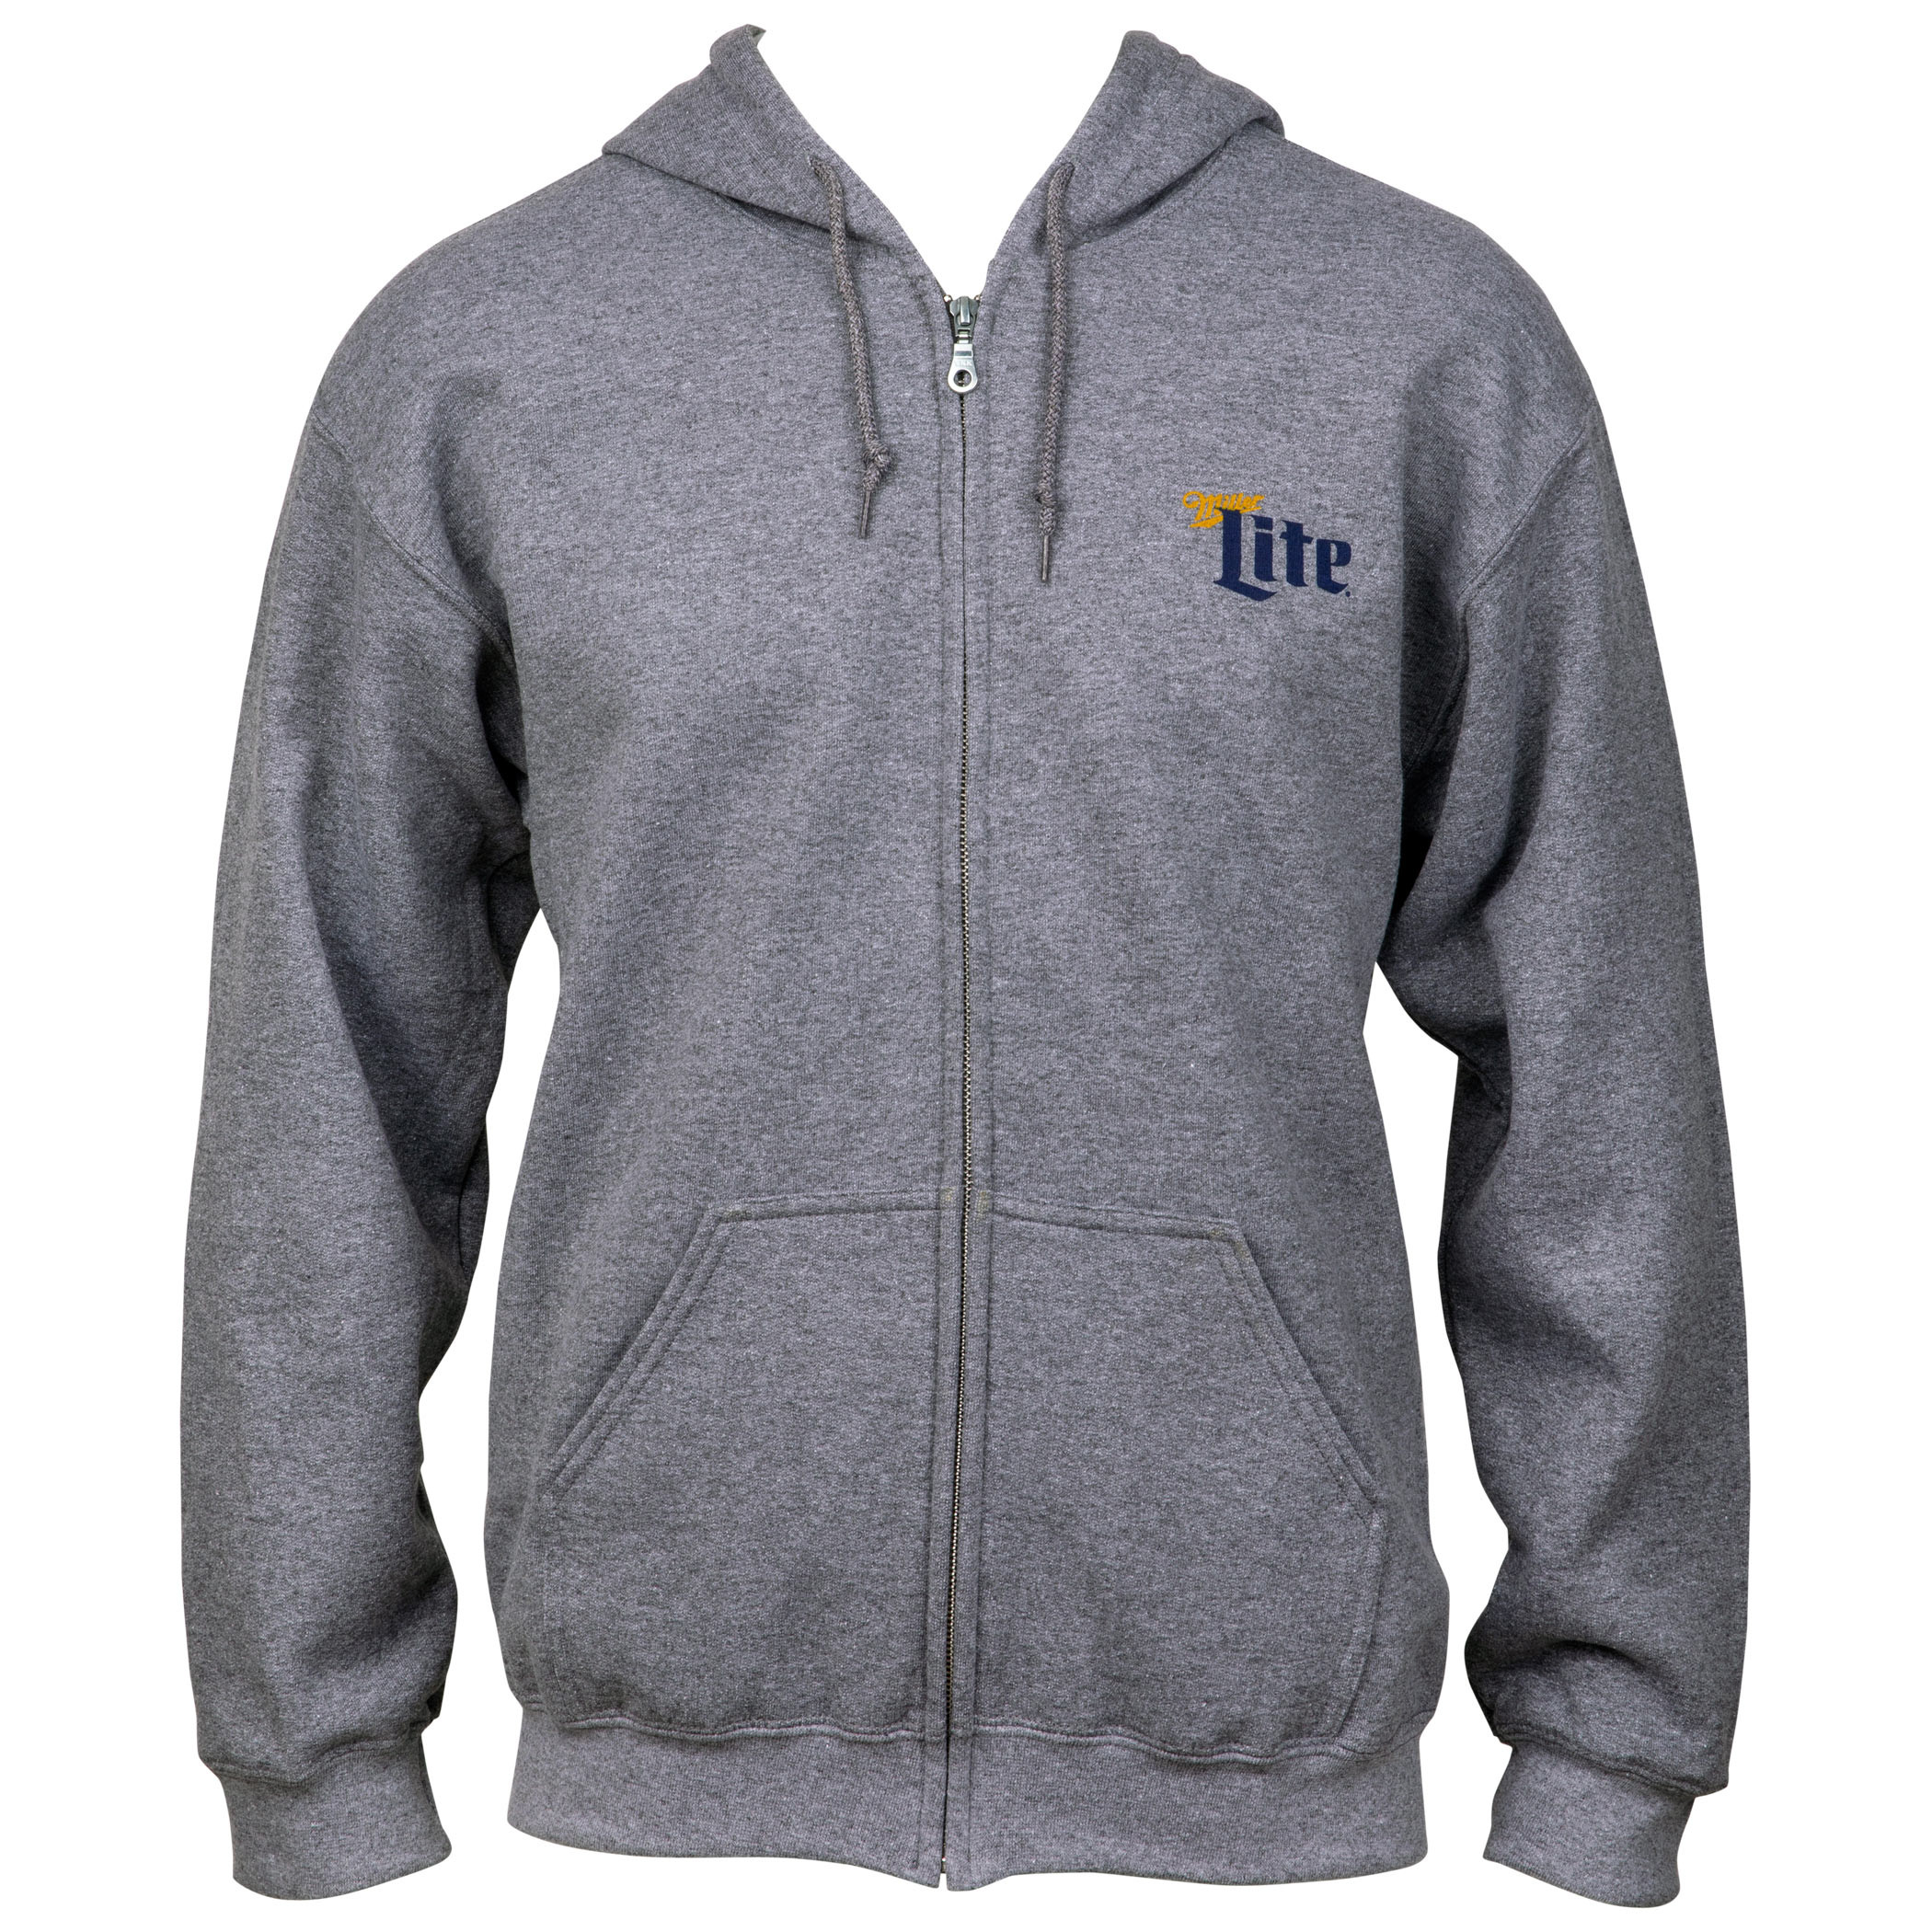 Miller Lite Front and Back Print Zip Up Hoodie